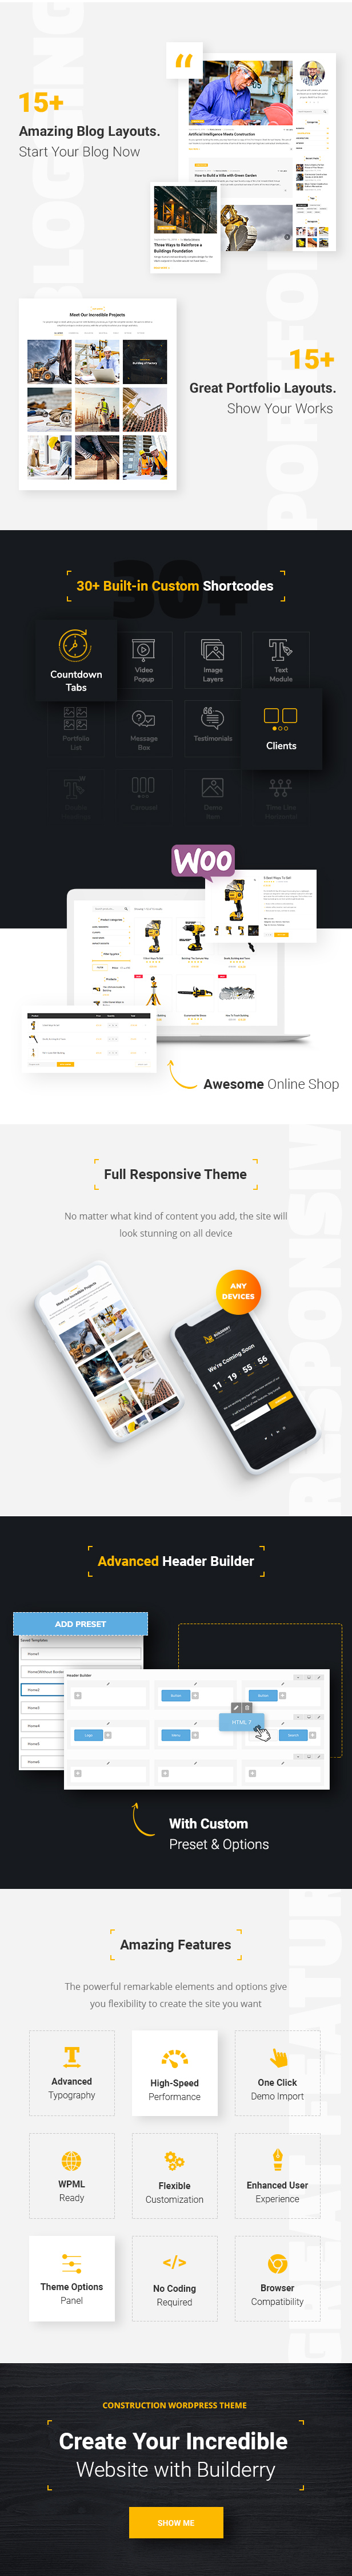 Builderry - Construction and Building WordPress Theme - 2